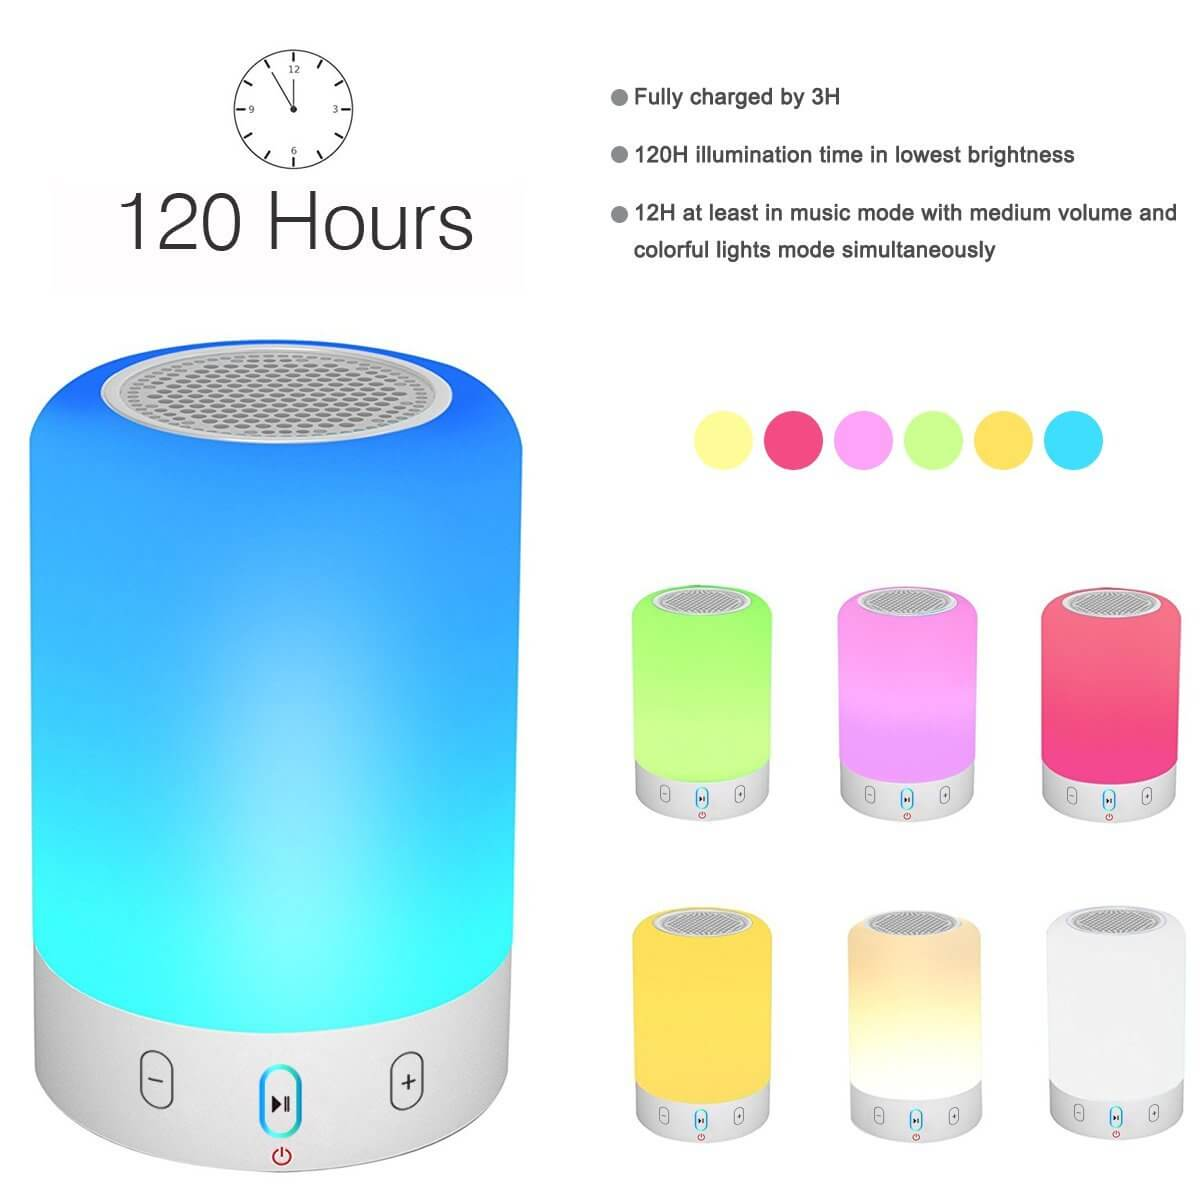 Portable Bluetooth Speaker with Lights From Voch